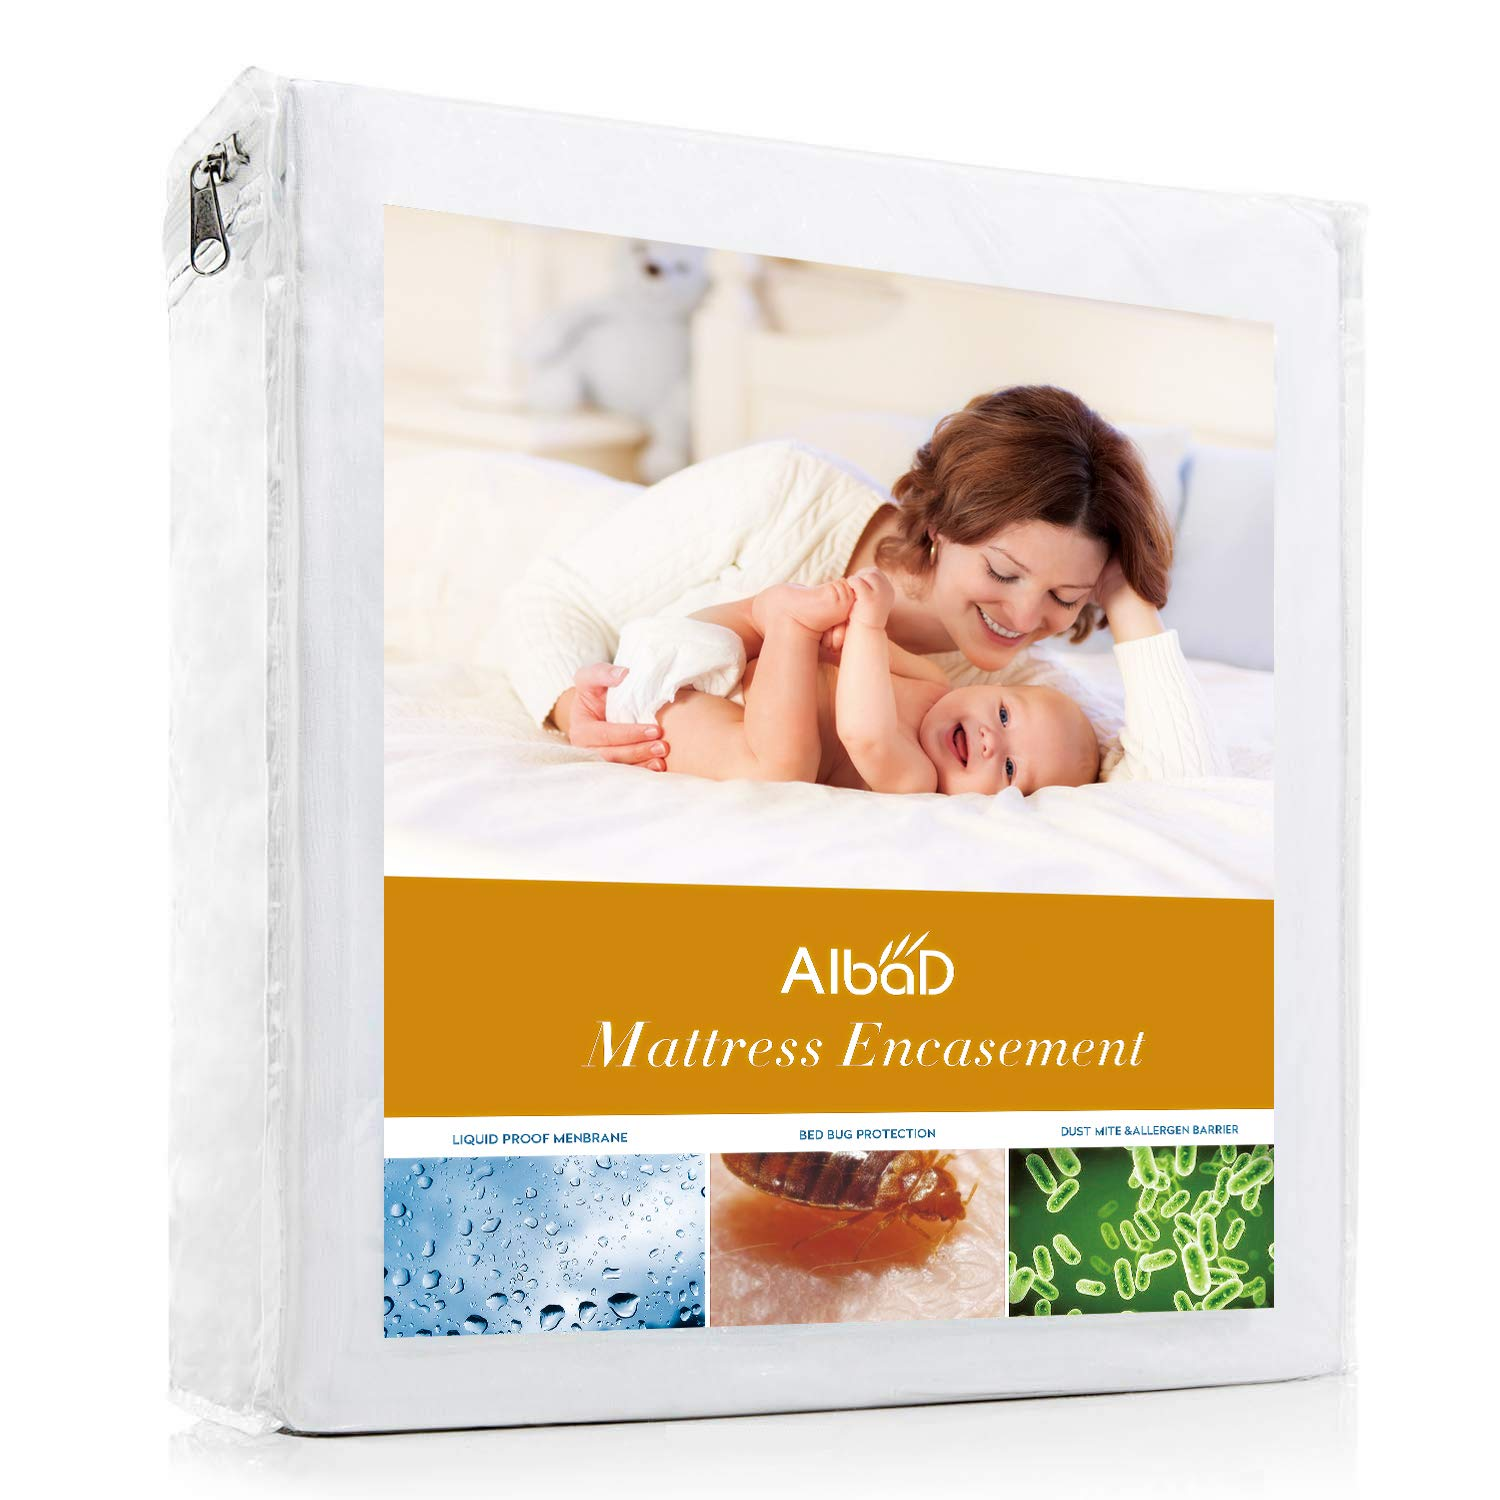 ALBAD Mattress Cover Twin Protector Pad 100% Waterproof Super Soft with 18 inches Deep Pocket Bed Cover Hypoallergenic bedspreads Dust Mite proofbed Sheet Cover Stain Resistant Comfortable Cotton